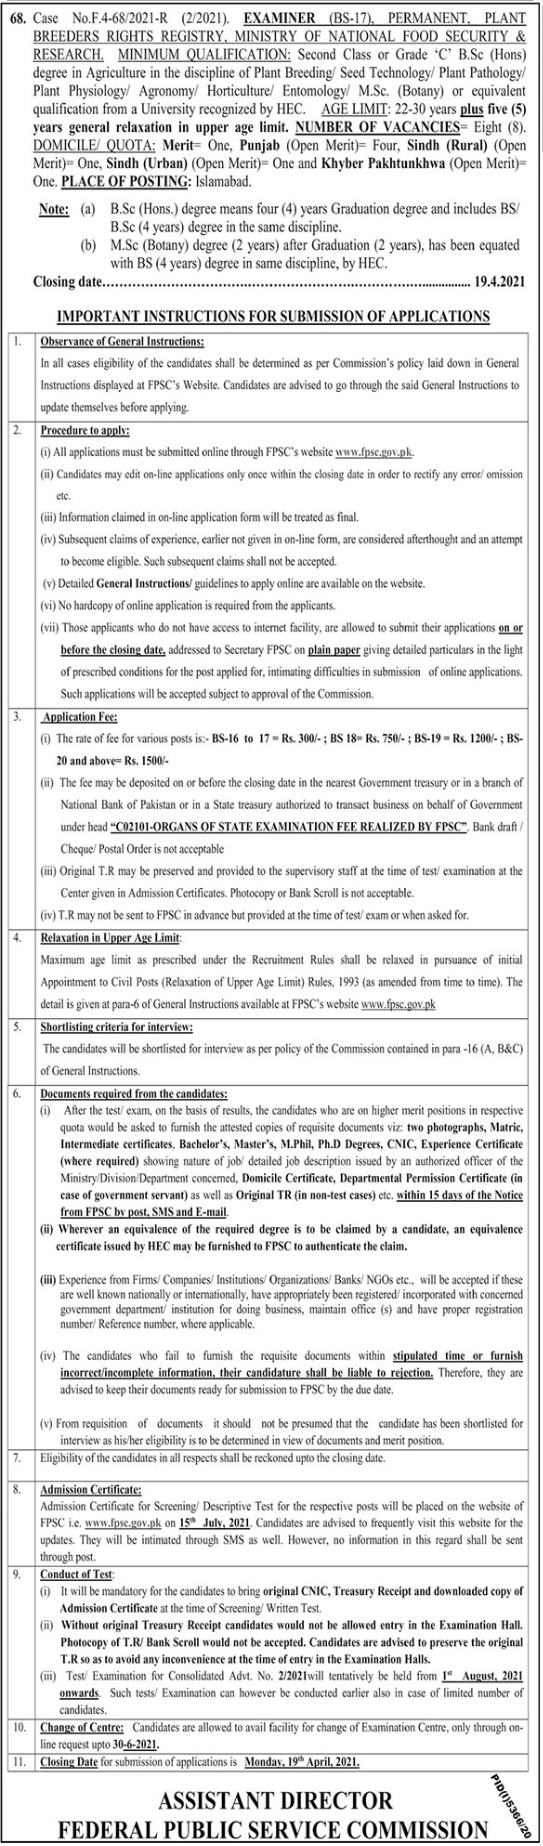 Federal Public Service Commission FPSC Jobs 2021